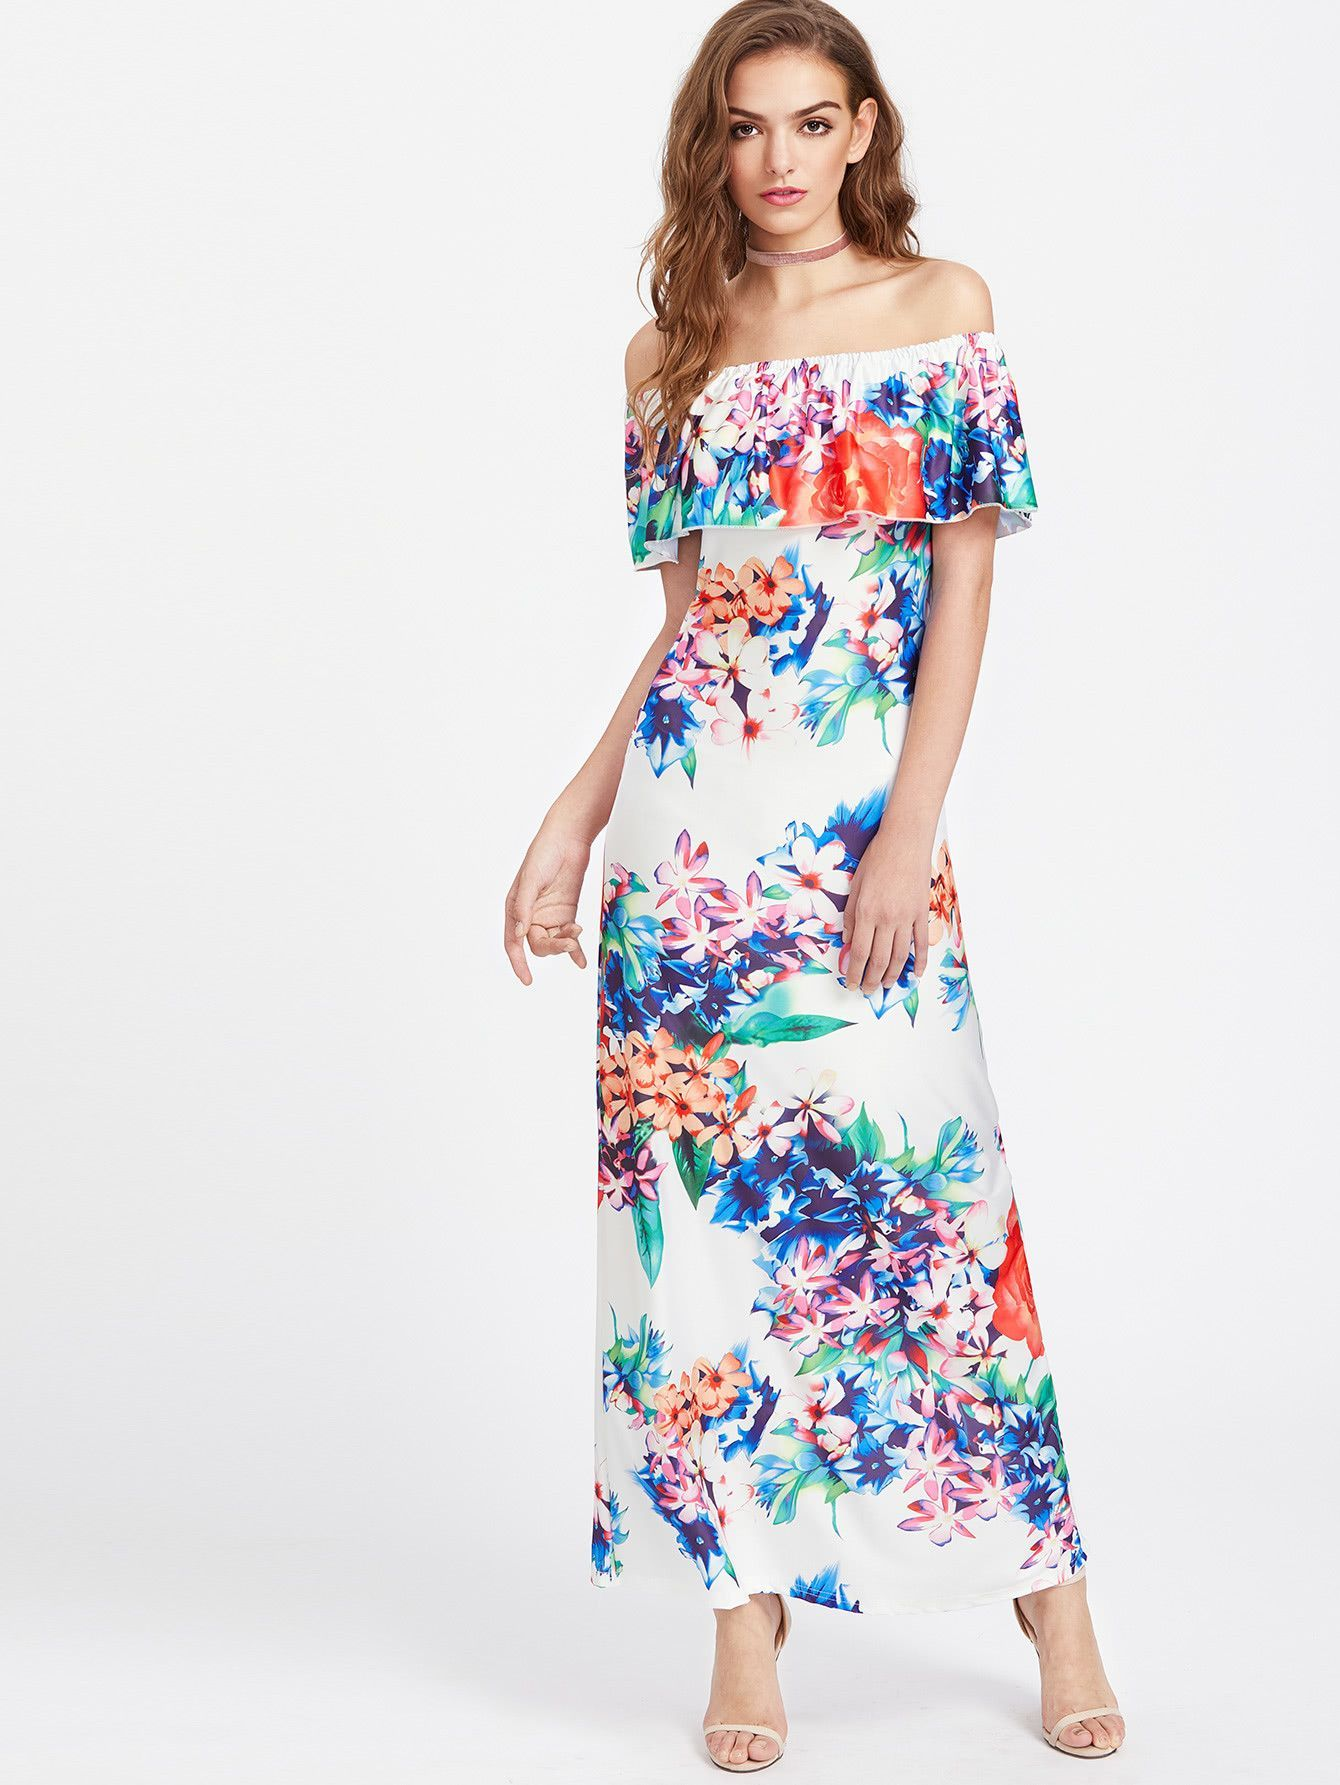 b8012c8addd747 White Floral Print Layered Off Shoulder Maxi Dress in 2019